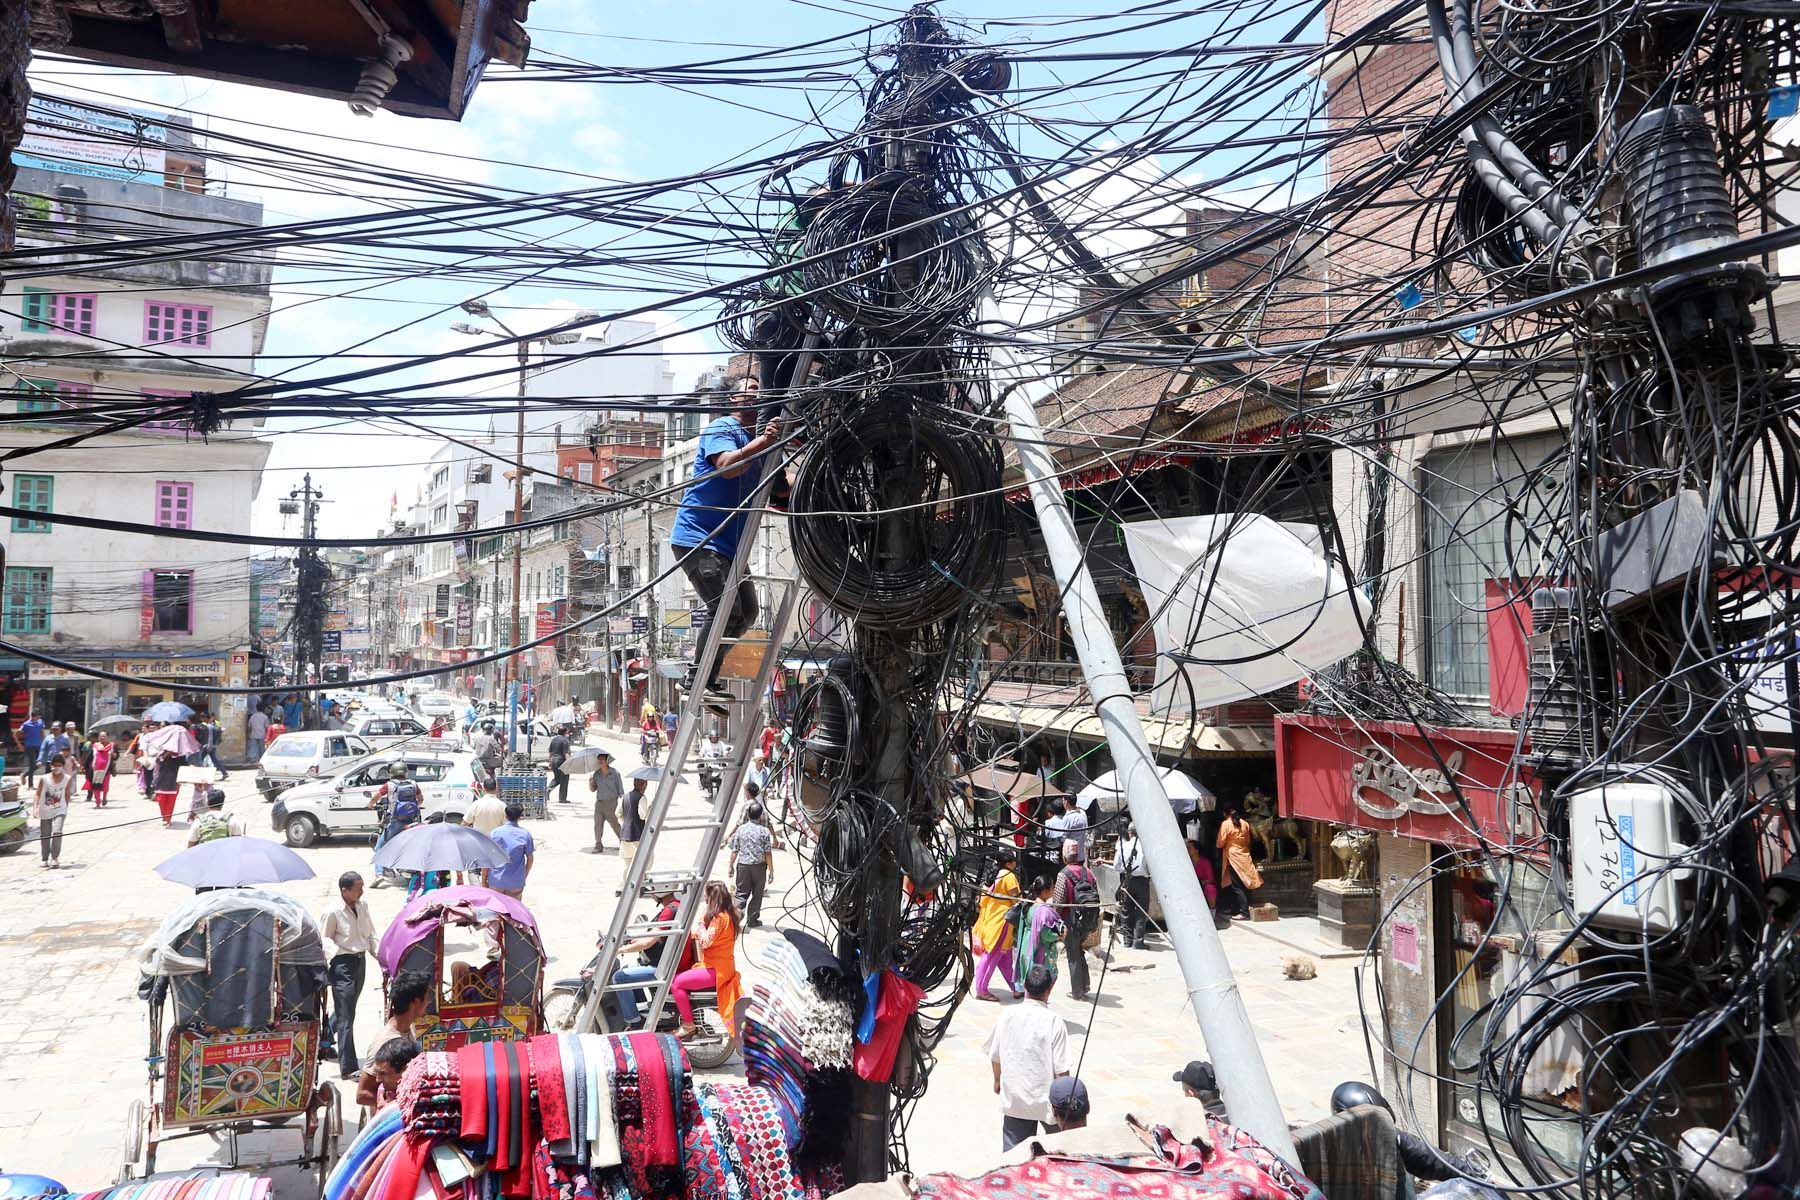 A man climbs a ladder to repair electrical wires on a utility pole in Indrachok of Kathmandu on Friday, June 15, 2016. Photo: RSS